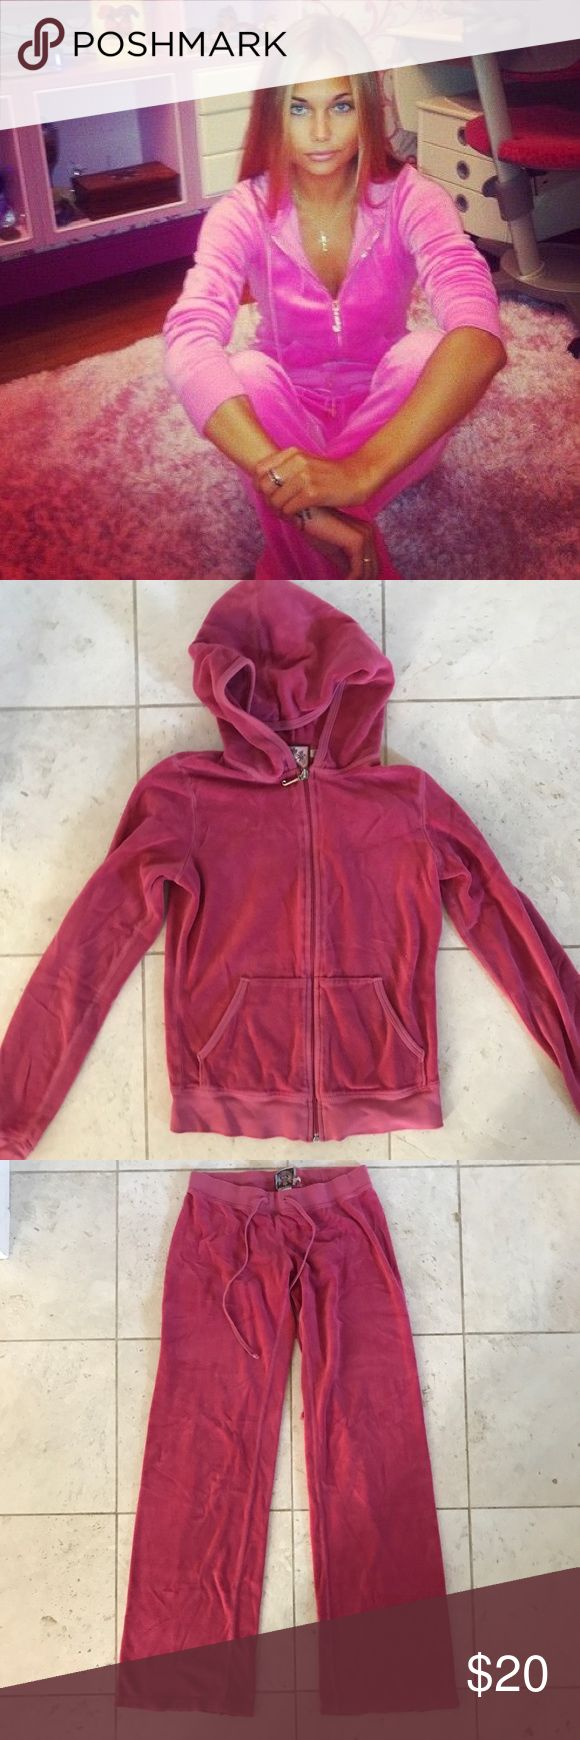 Magenta Juicy Couture Sweatsuit Good condition velour sweatsuit. Some wear and tear as shown in photographs.  Sold only as set. Top size S Pants size P. Juicy Couture Tops Sweatshirts & Hoodies